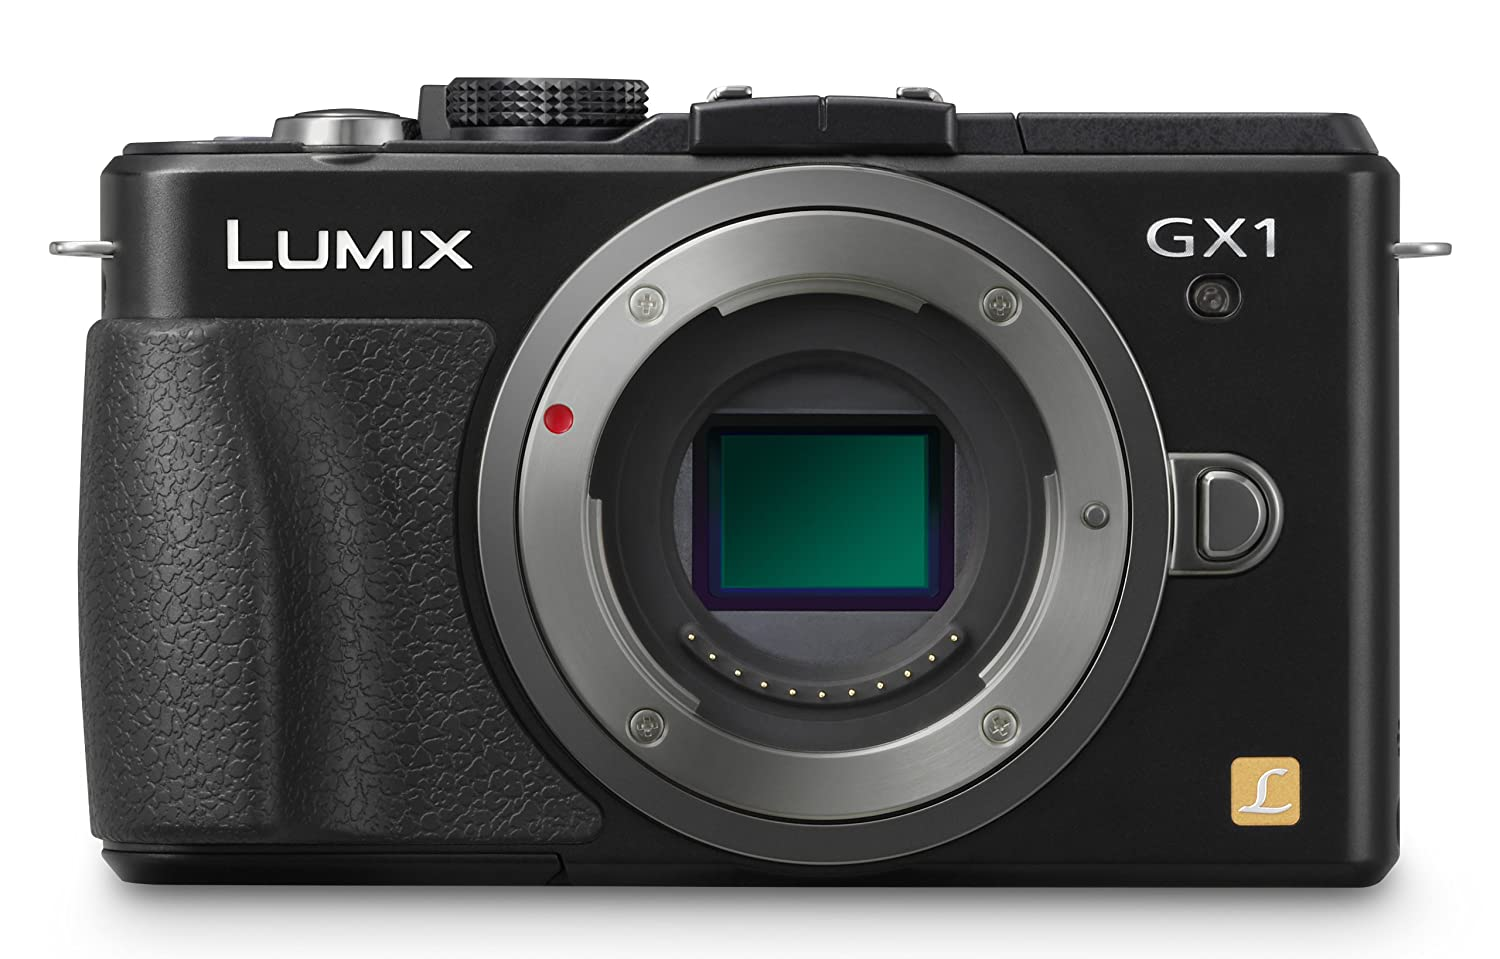 Panasonic Lumix DMC-GX1 16 MP Micro 4/3 Compact System Camera with 3-Inch LCD Touch Screen Body Only ($319.00)